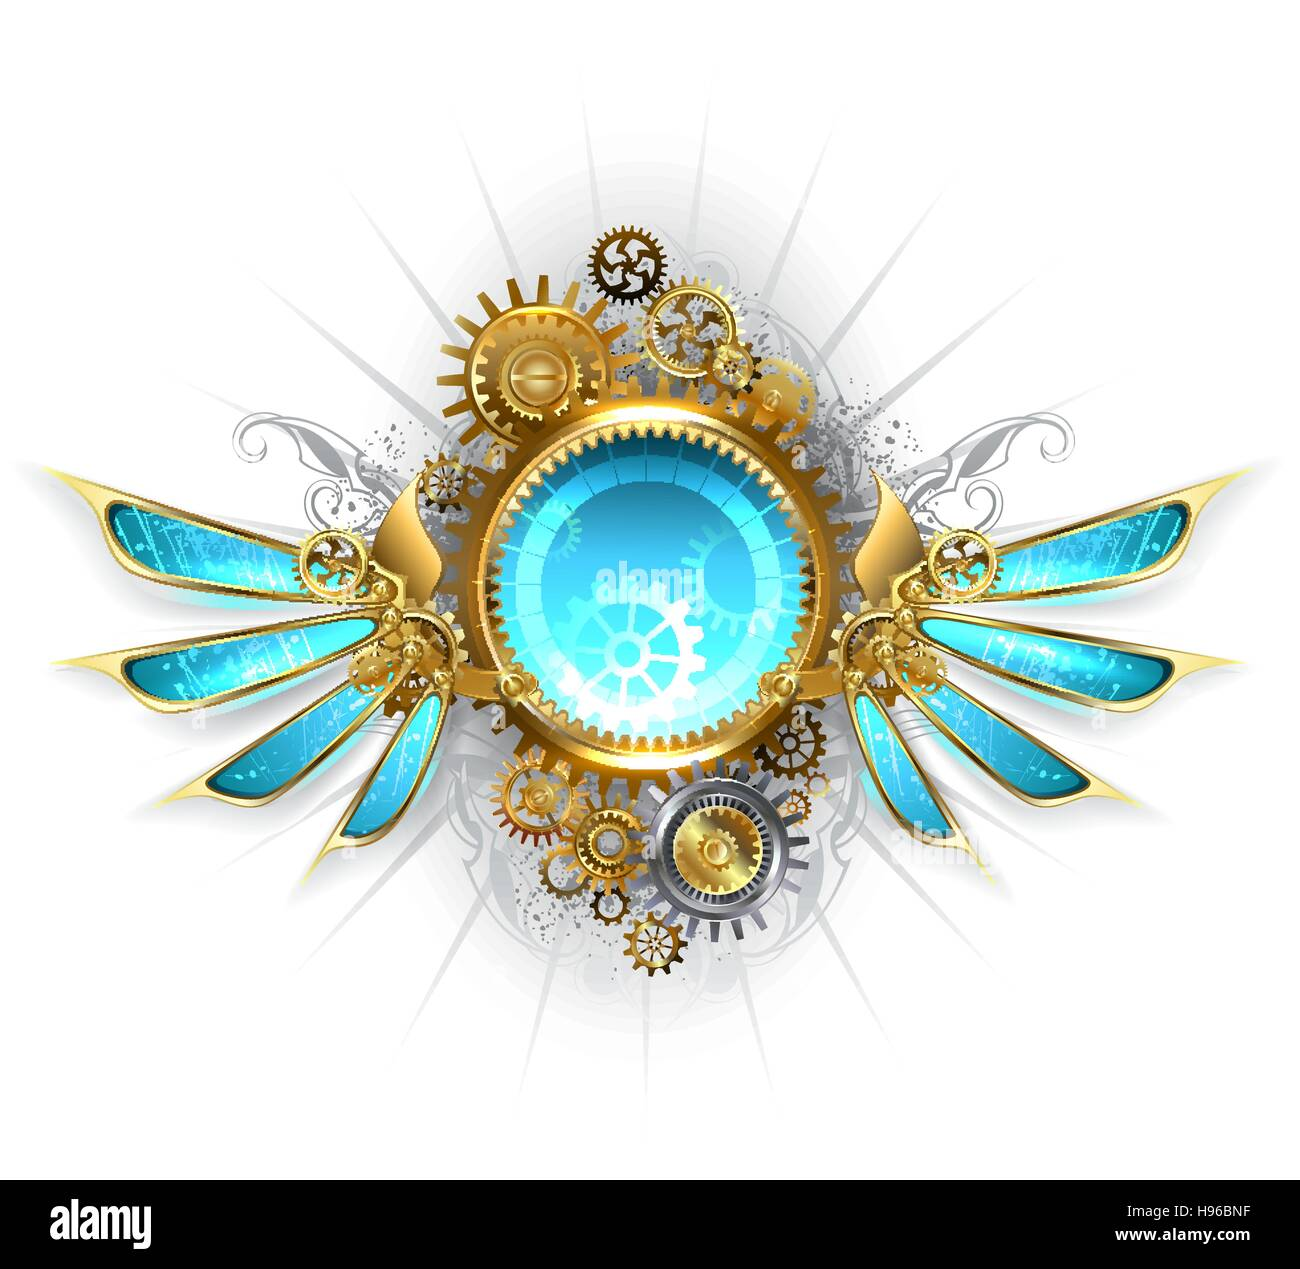 round banner with gold and brass gears, decorated with blue glass mechanical wings on a white background - Stock Image